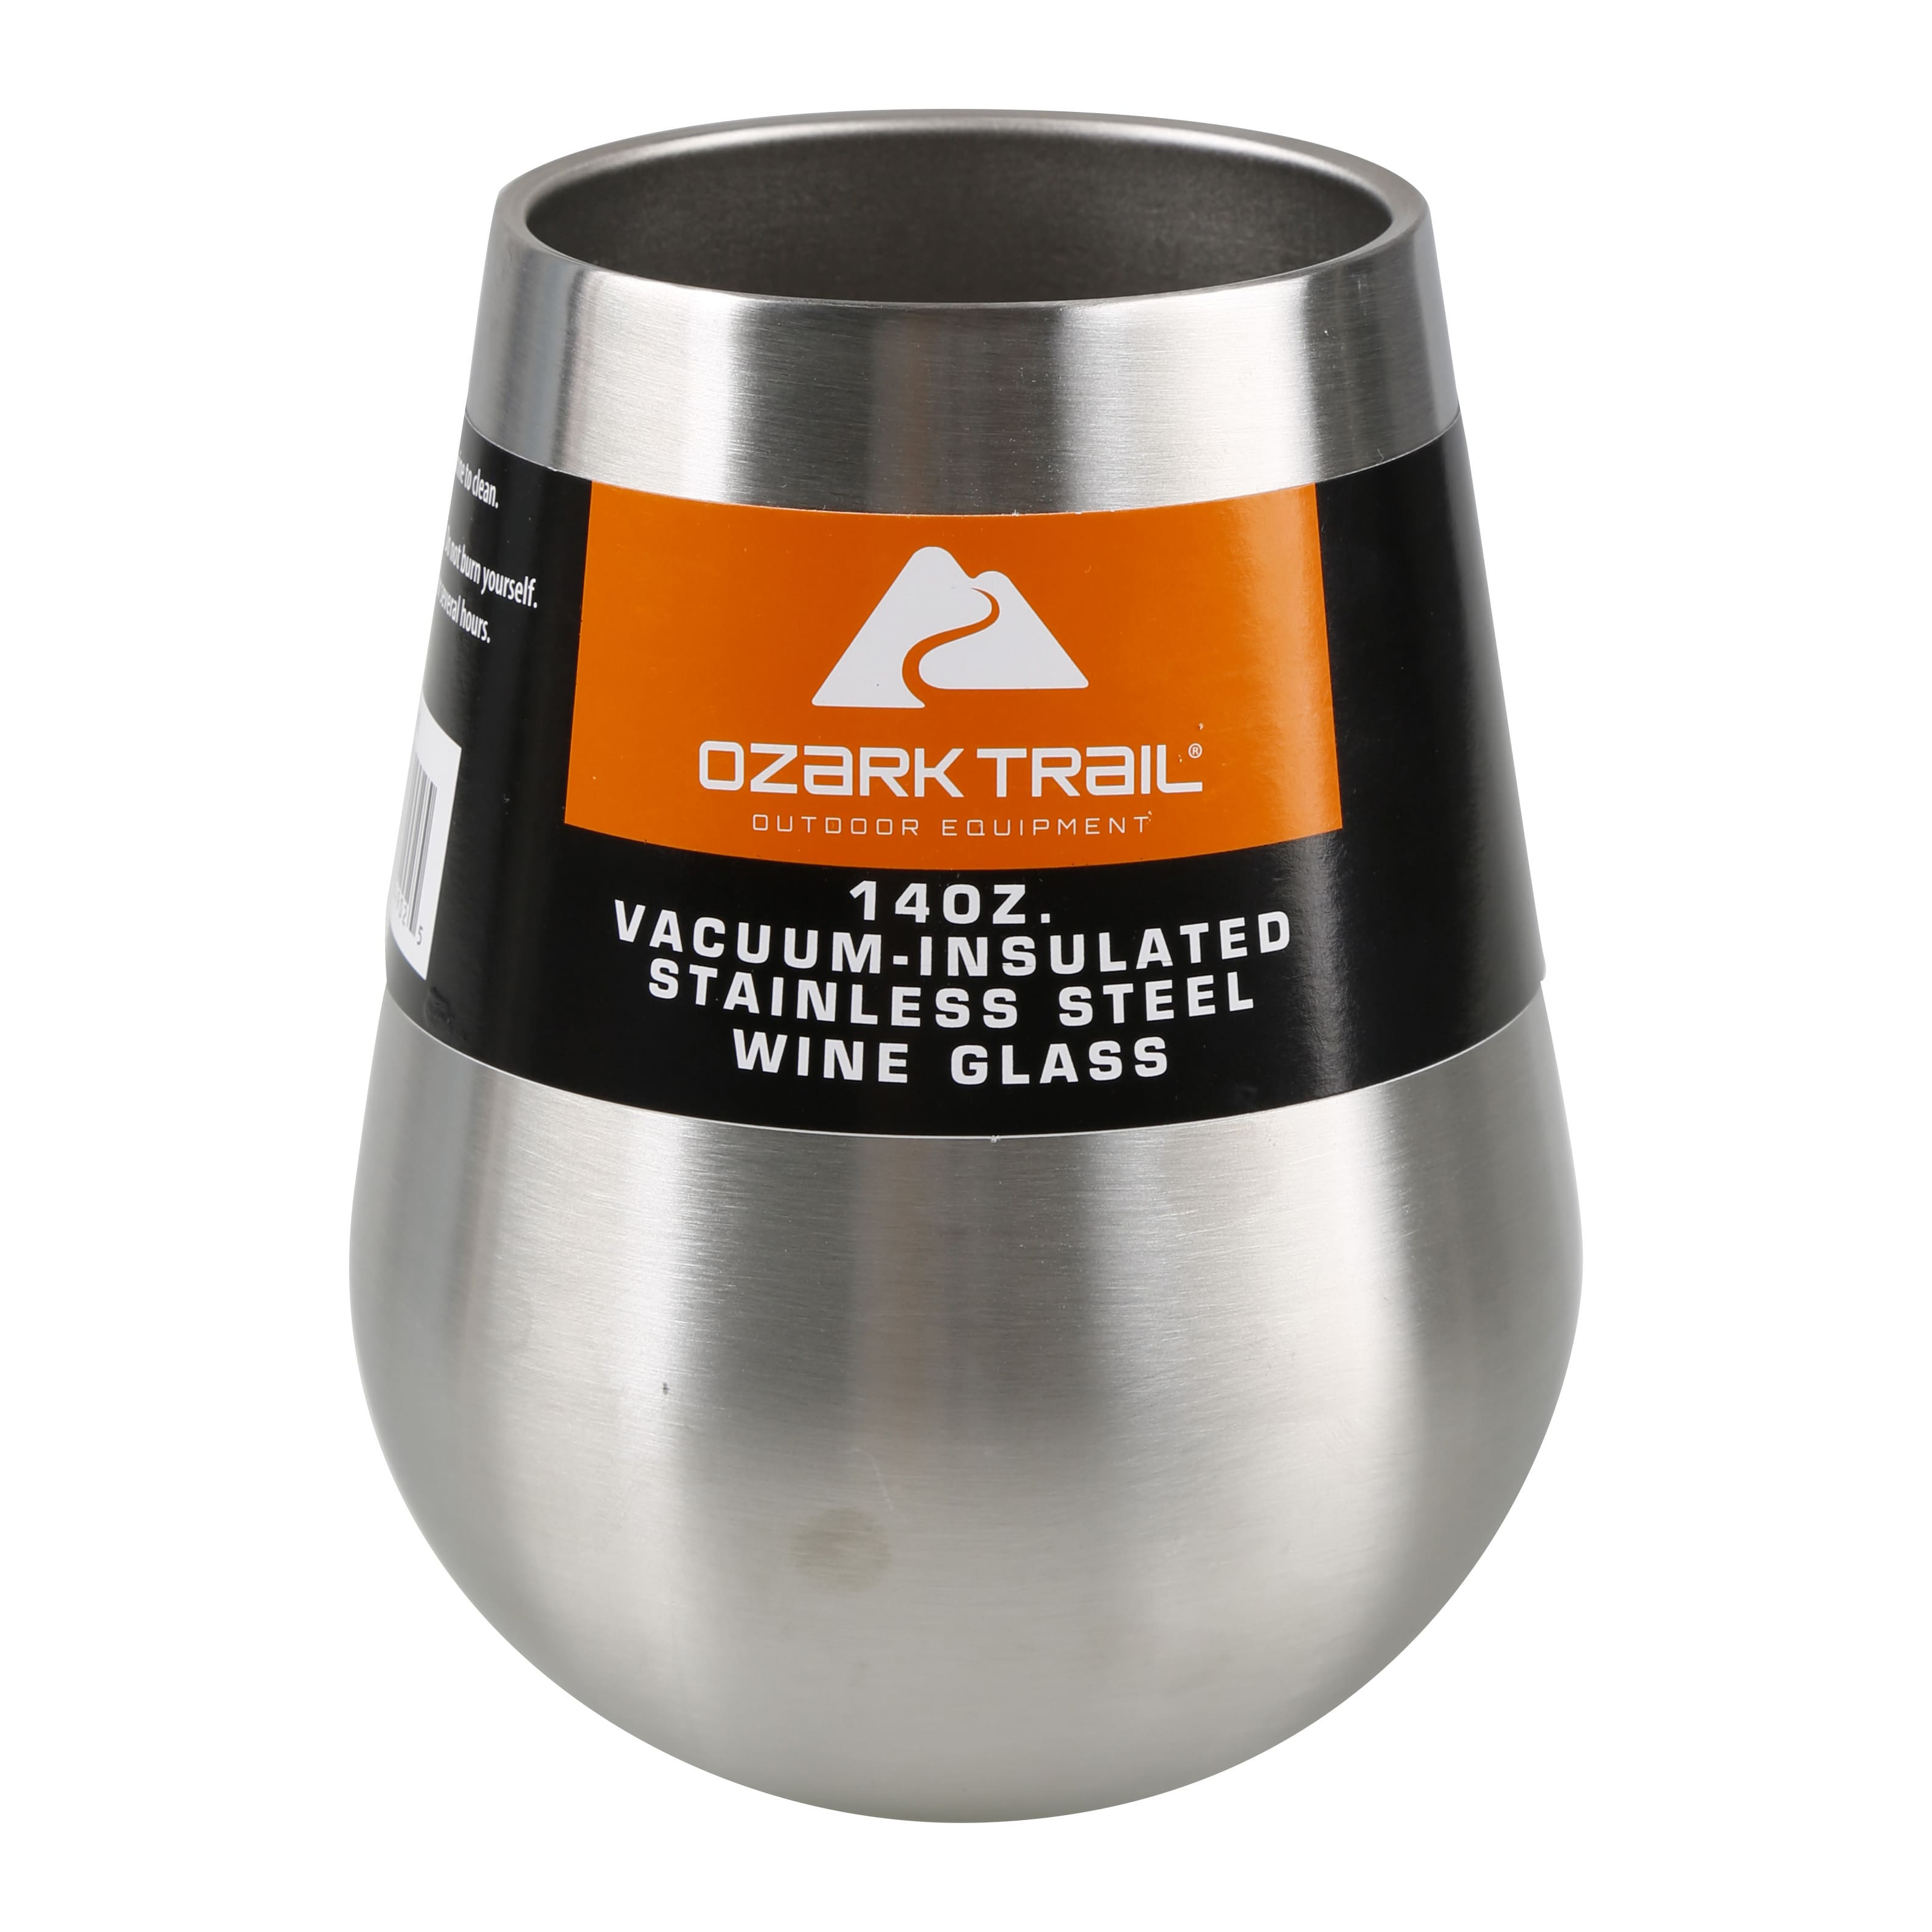 Walmart Ozark Trail 14 Oz Vacuum-Insulated Stainless Steel WINE Glass ymmw IN Store clearance $1.00